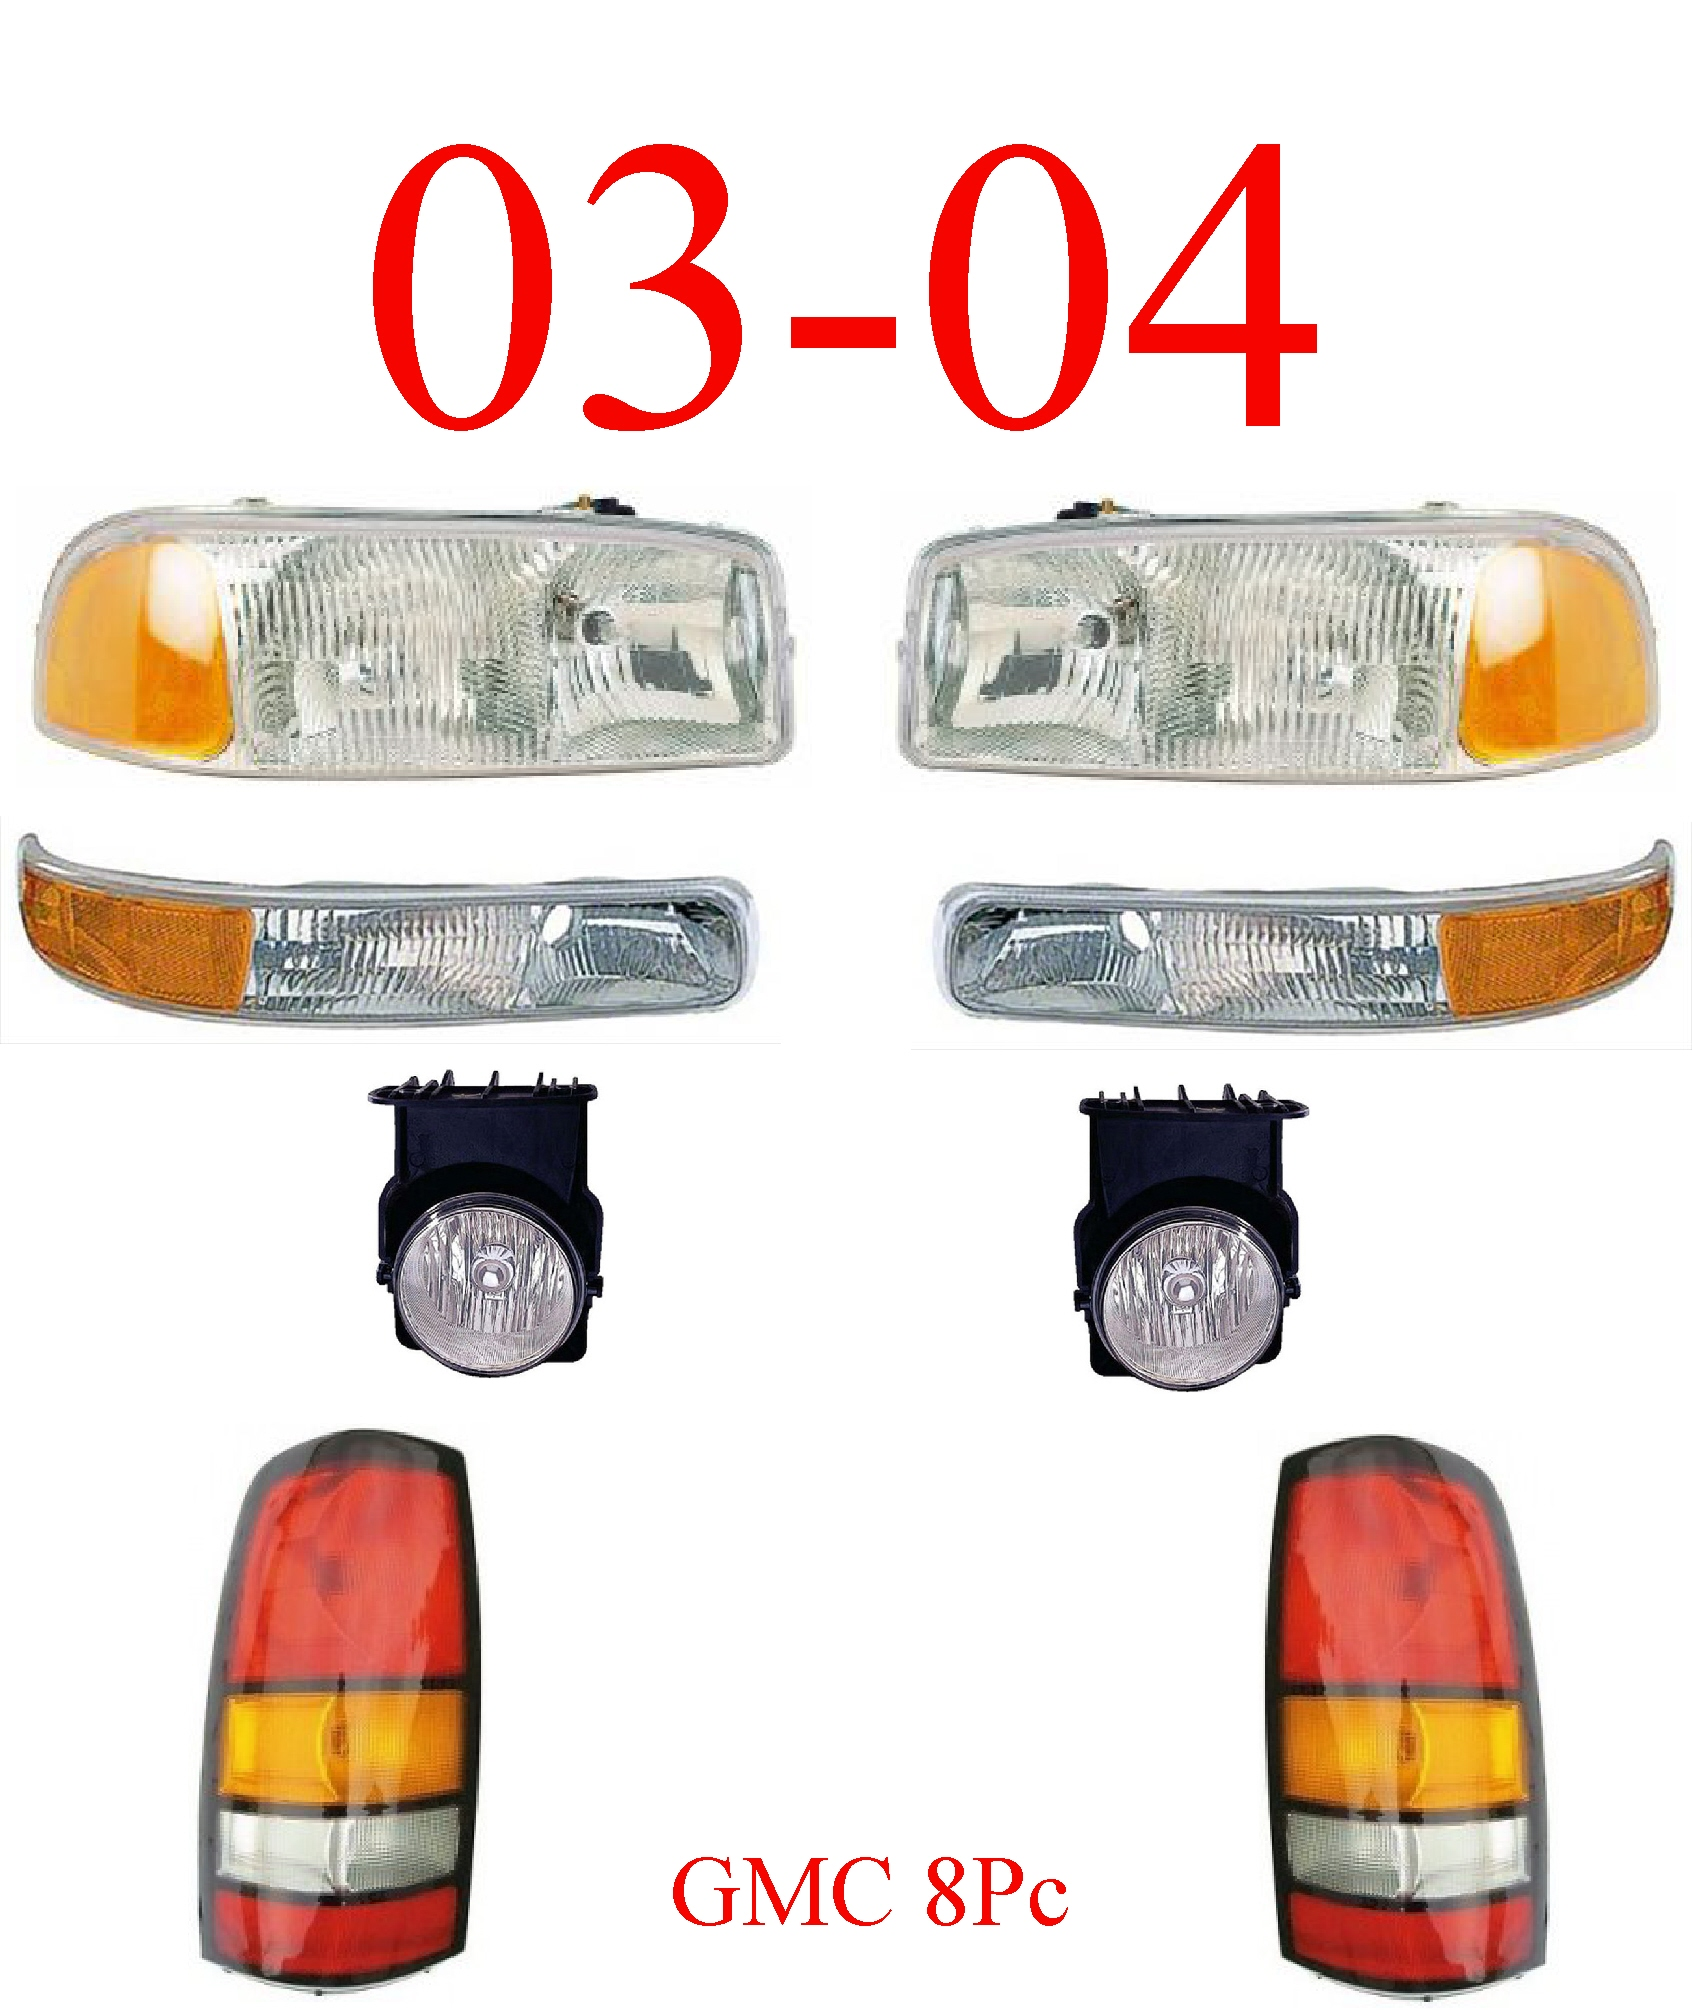 03-04 GMC Truck 8Pc Head, Park, Fog & Tail Light Assembly